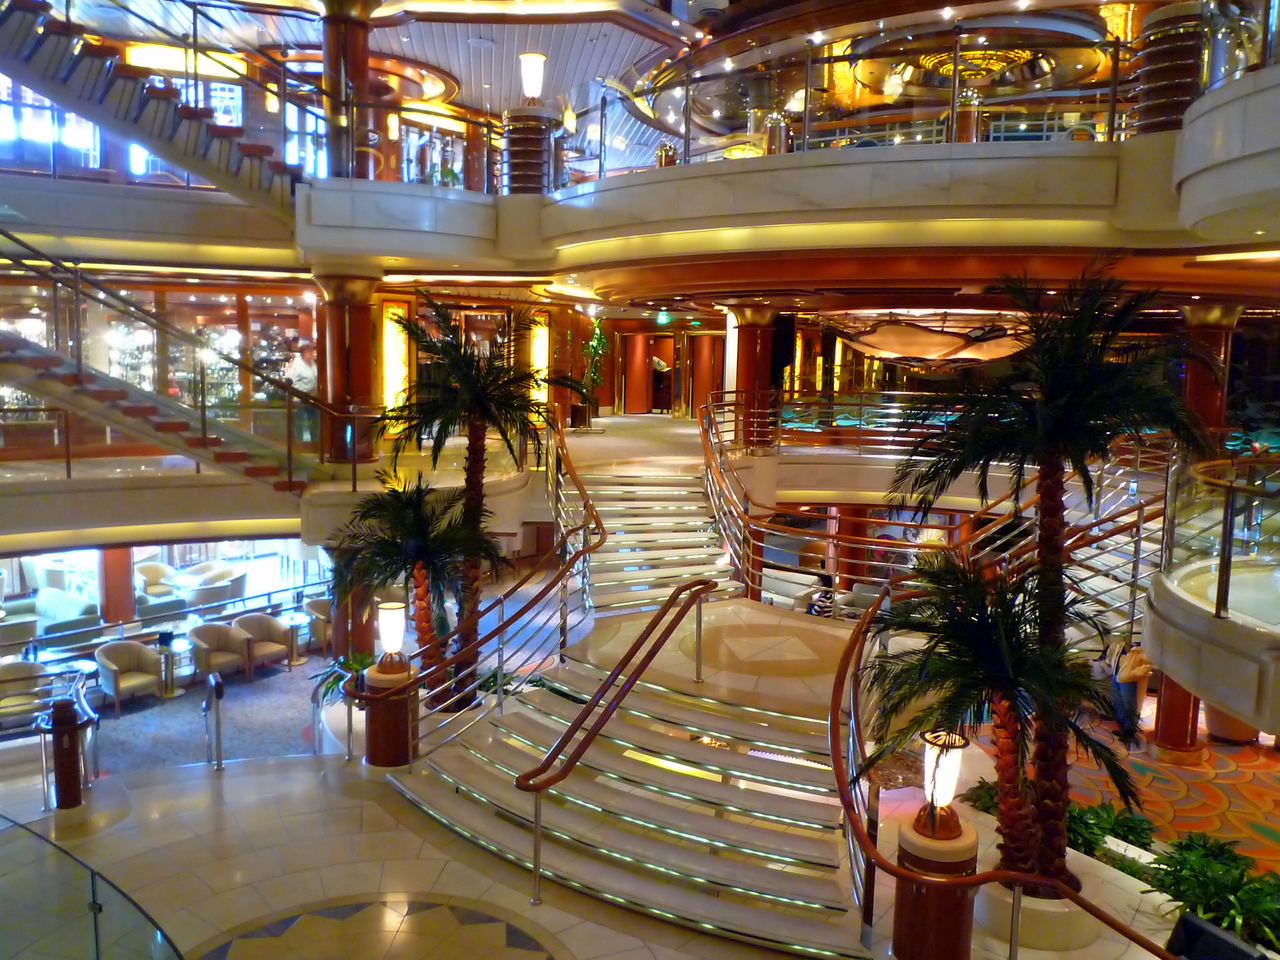 Atrium area mid-ship